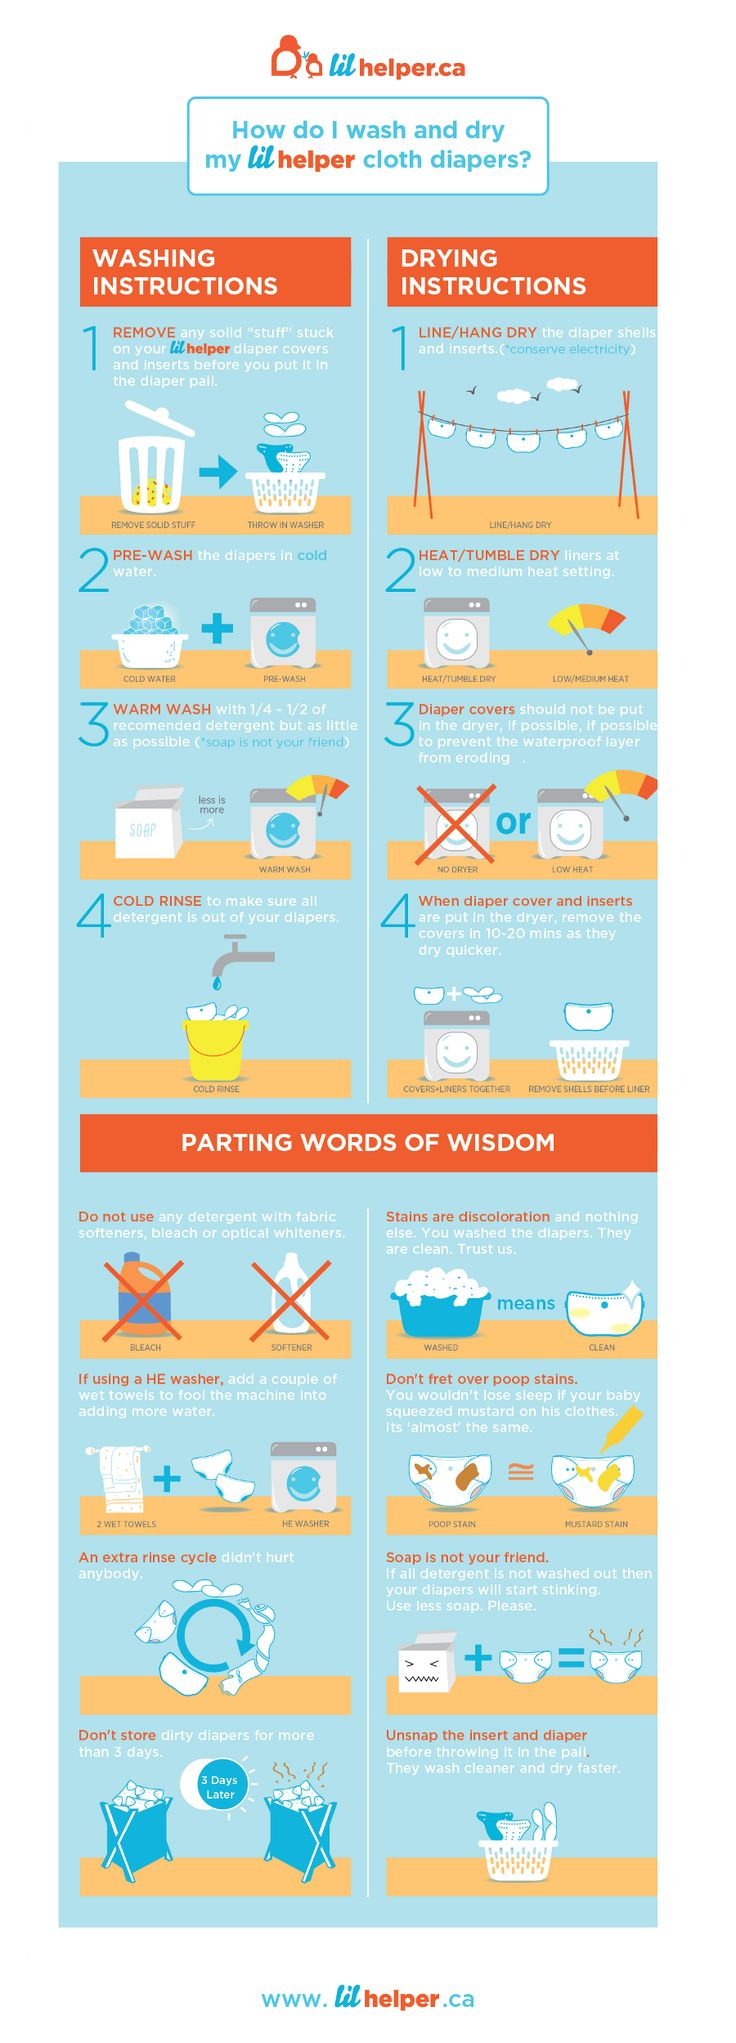 Great Graphic summarizing cloth diaper washing - I'm printing this to hang in the laundry room for my husband,